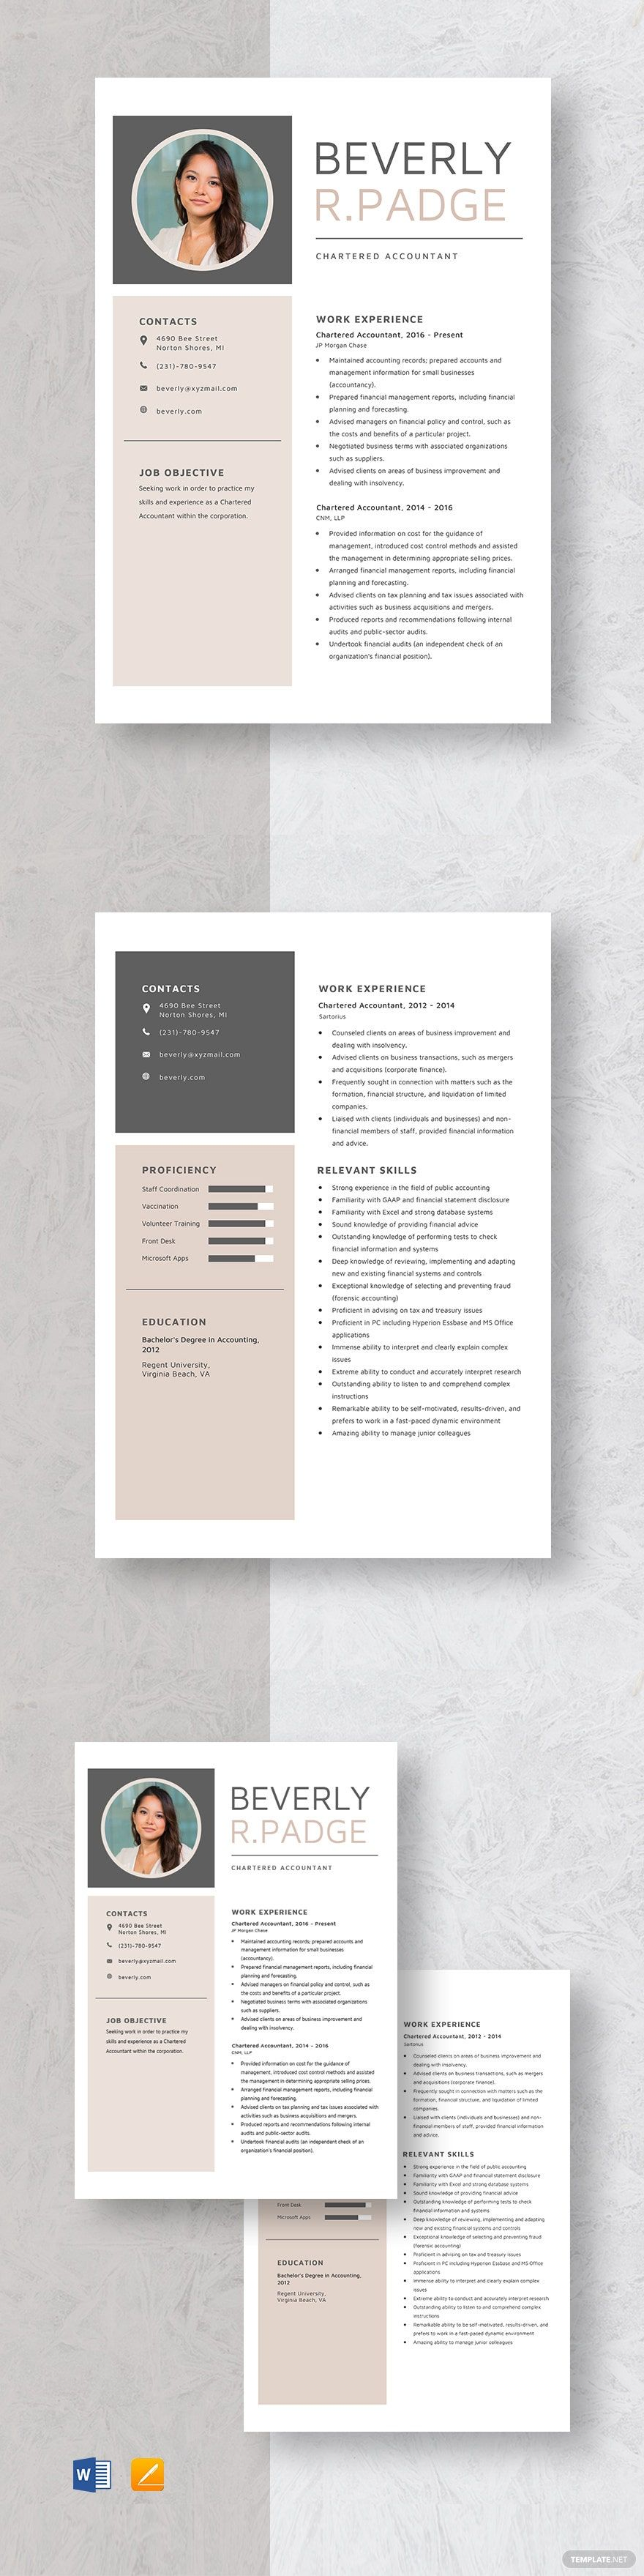 Chartered accountant resume template in 2020 nursing